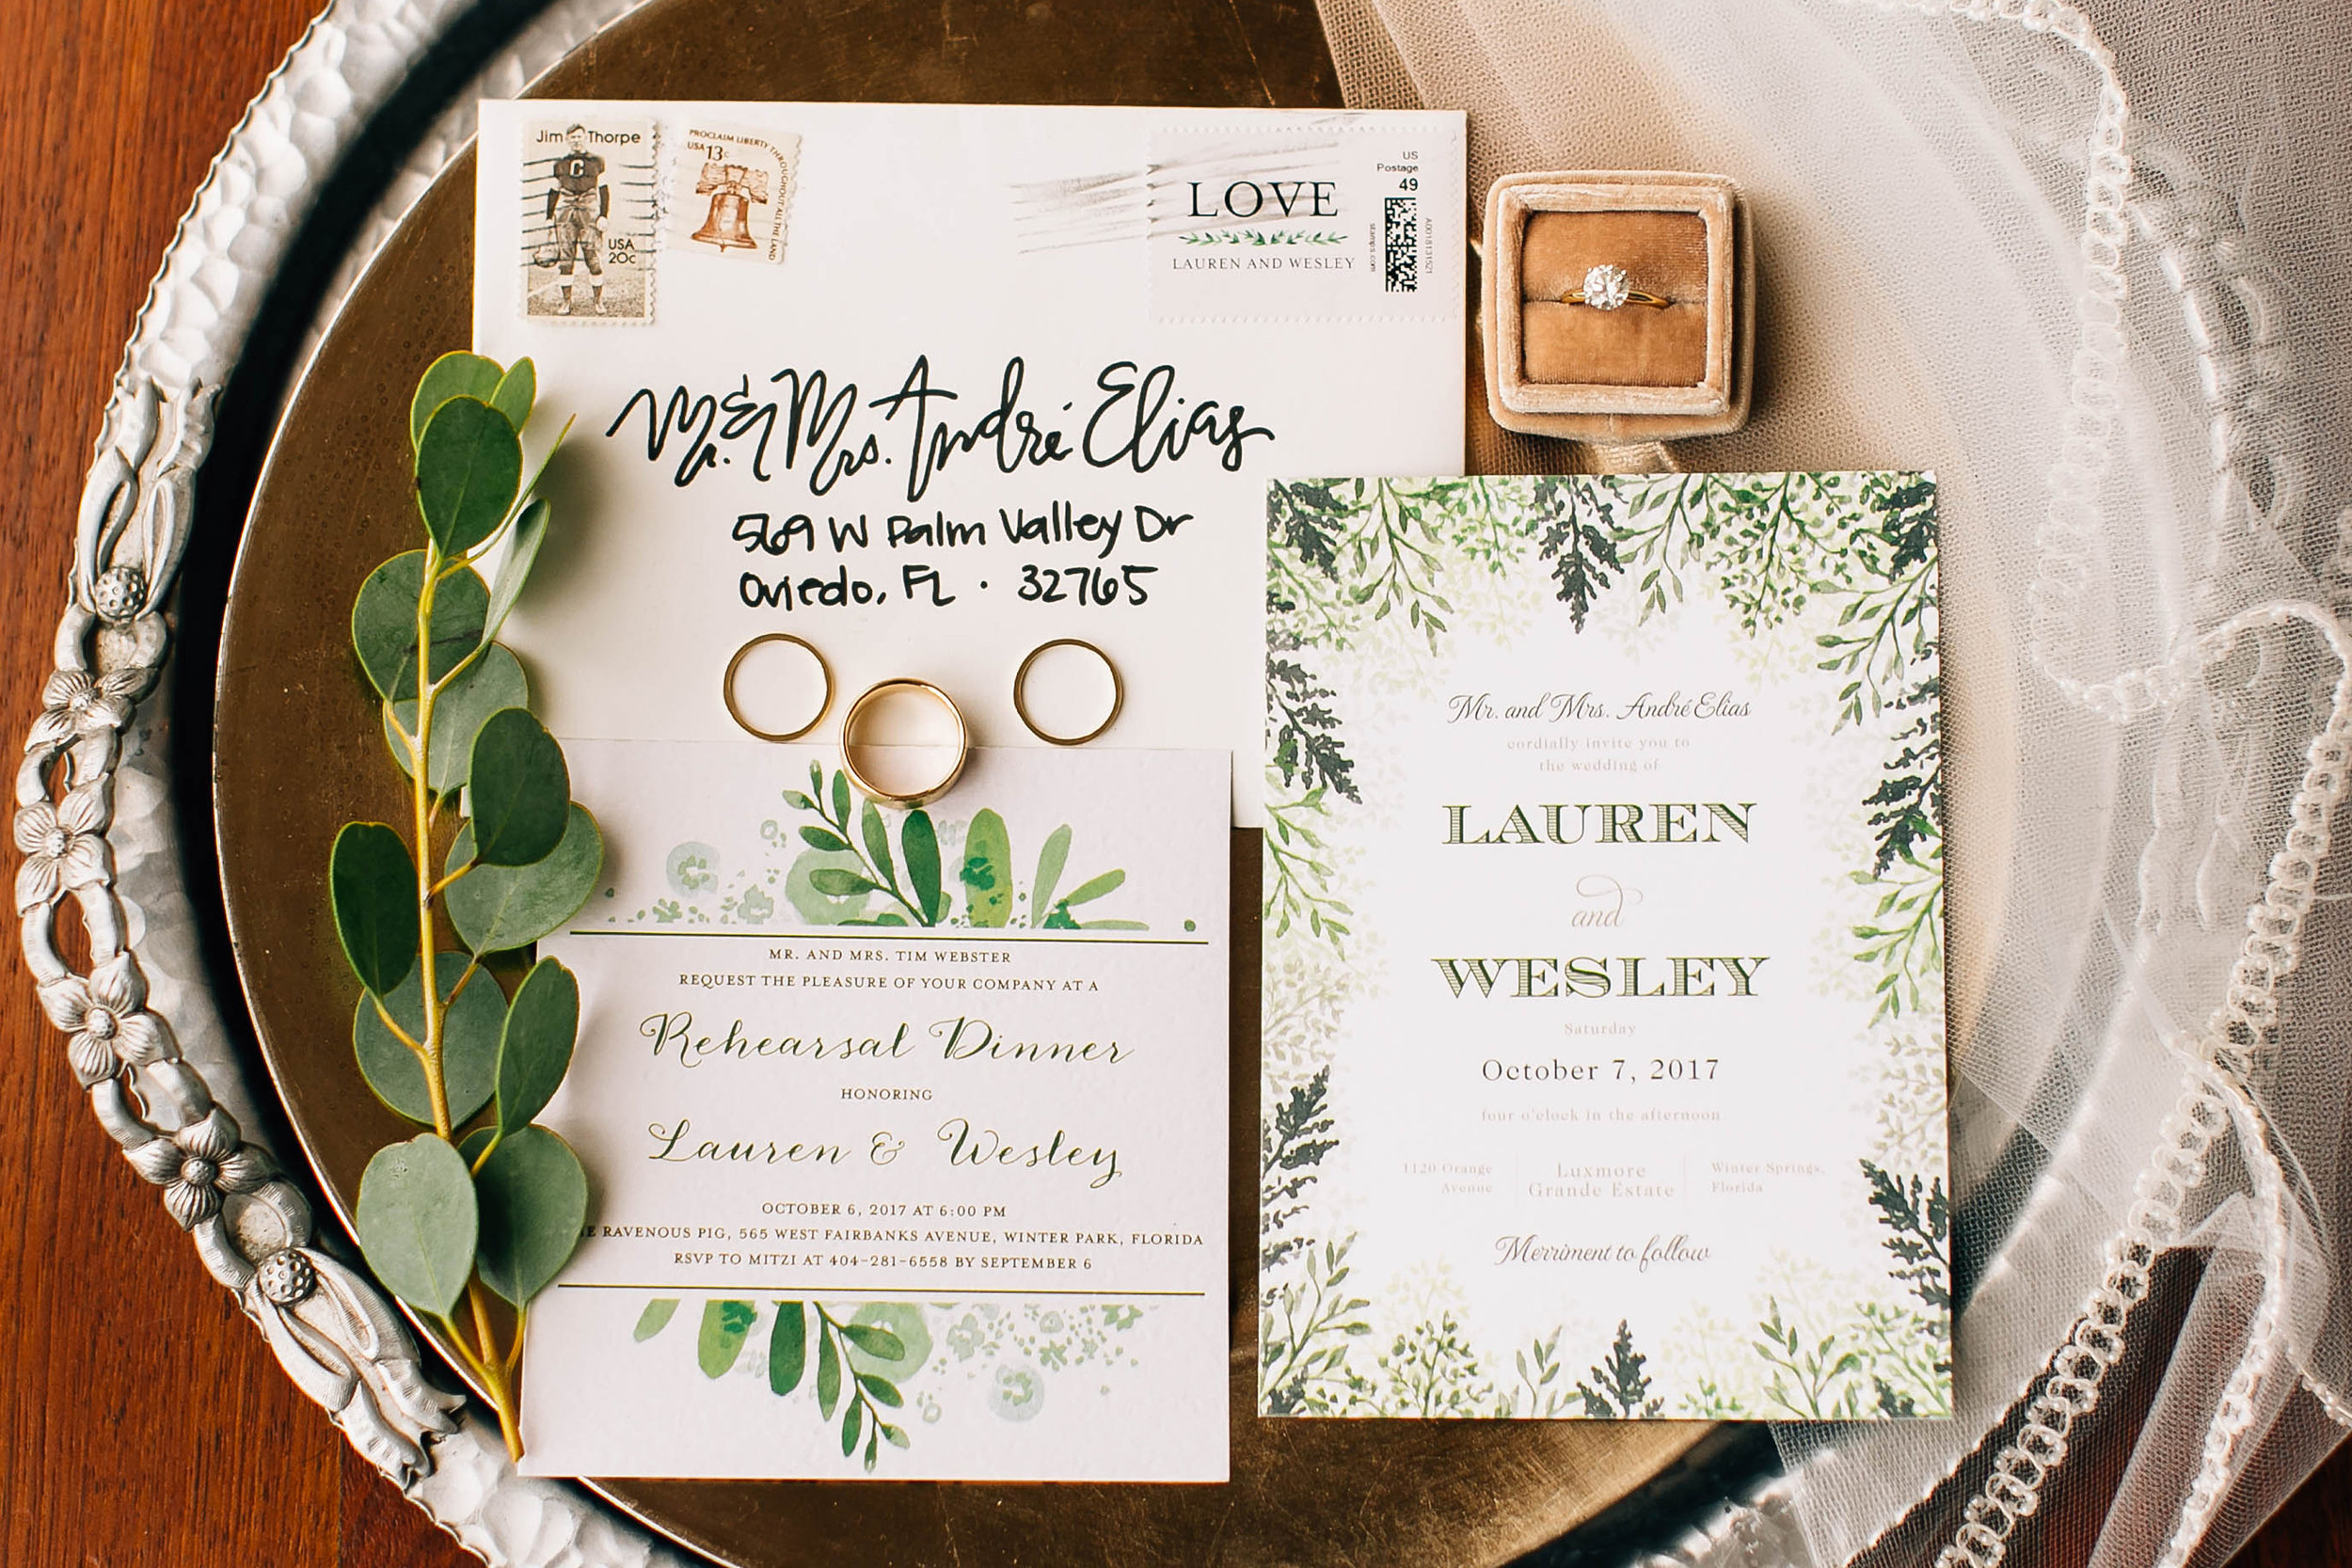 Stationery suite styled on vintage tray with Mrs box & invitations